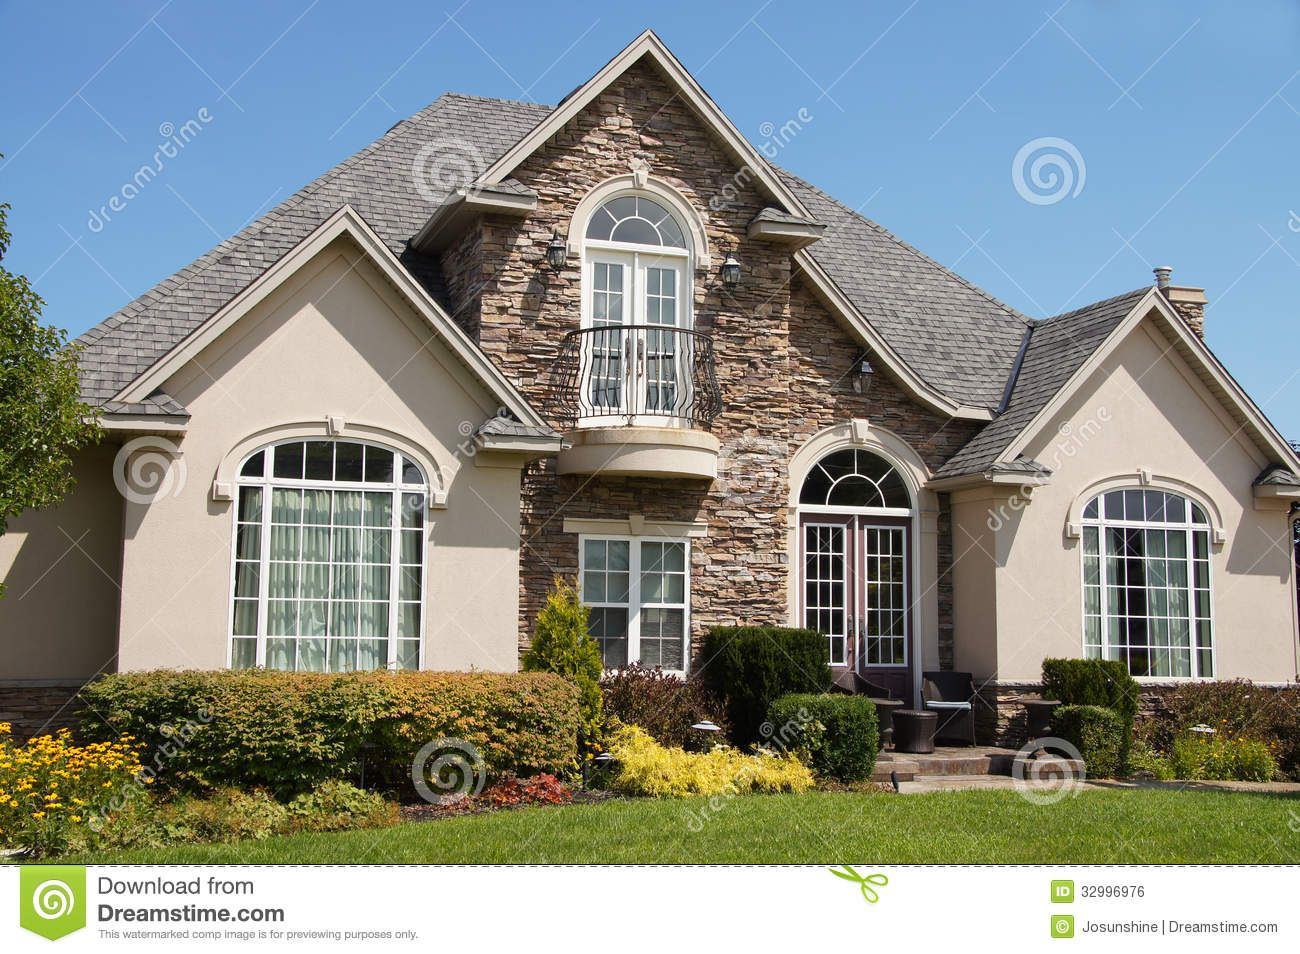 Stucco Stone House Pretty Windows Royalty Free Stock Image